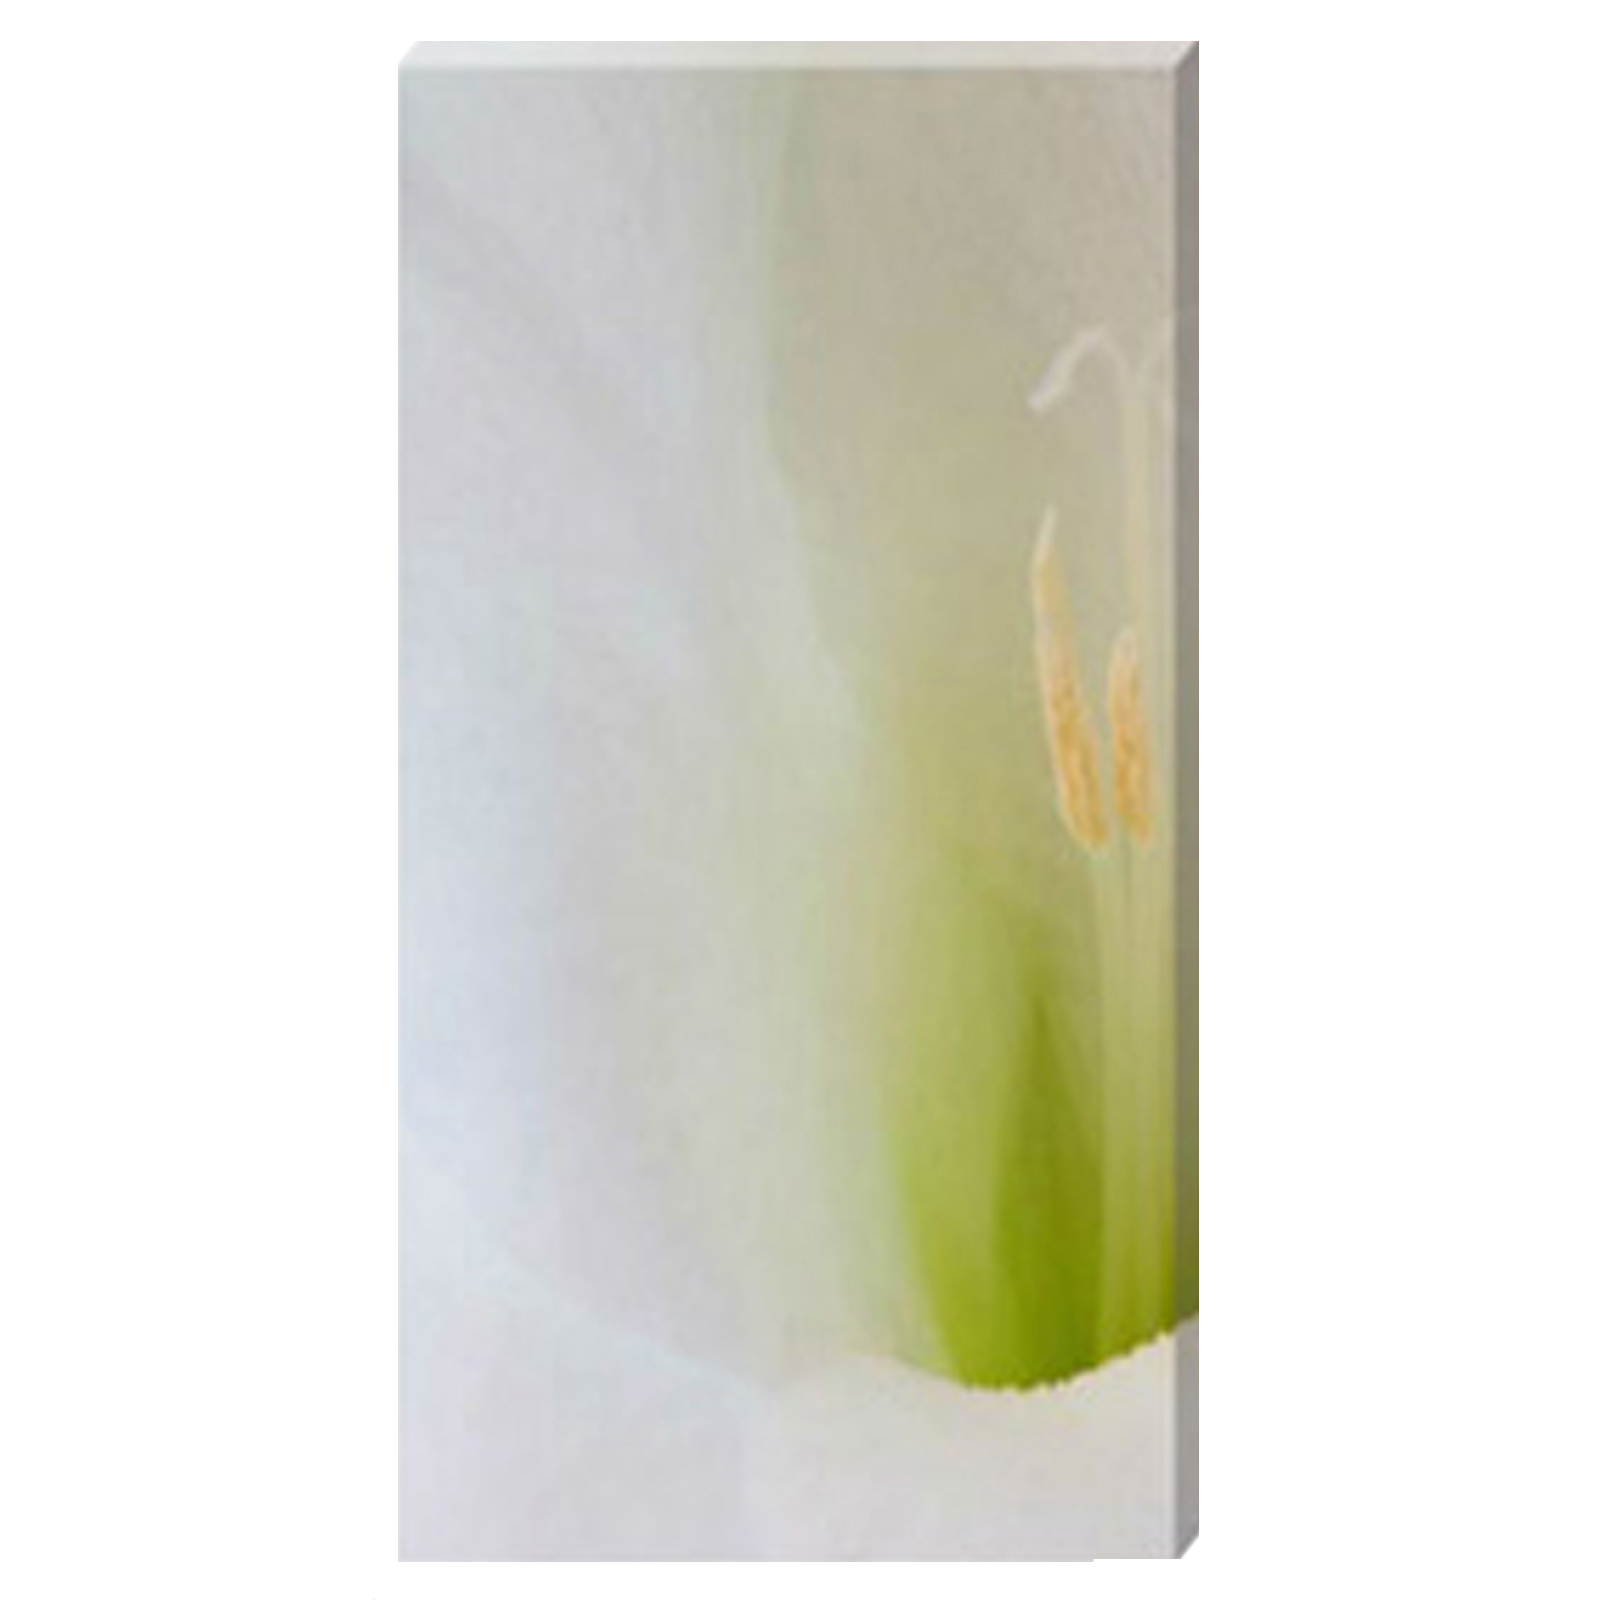 Gladioli Flute Stretched Canvas by Celia Henderson LRPS